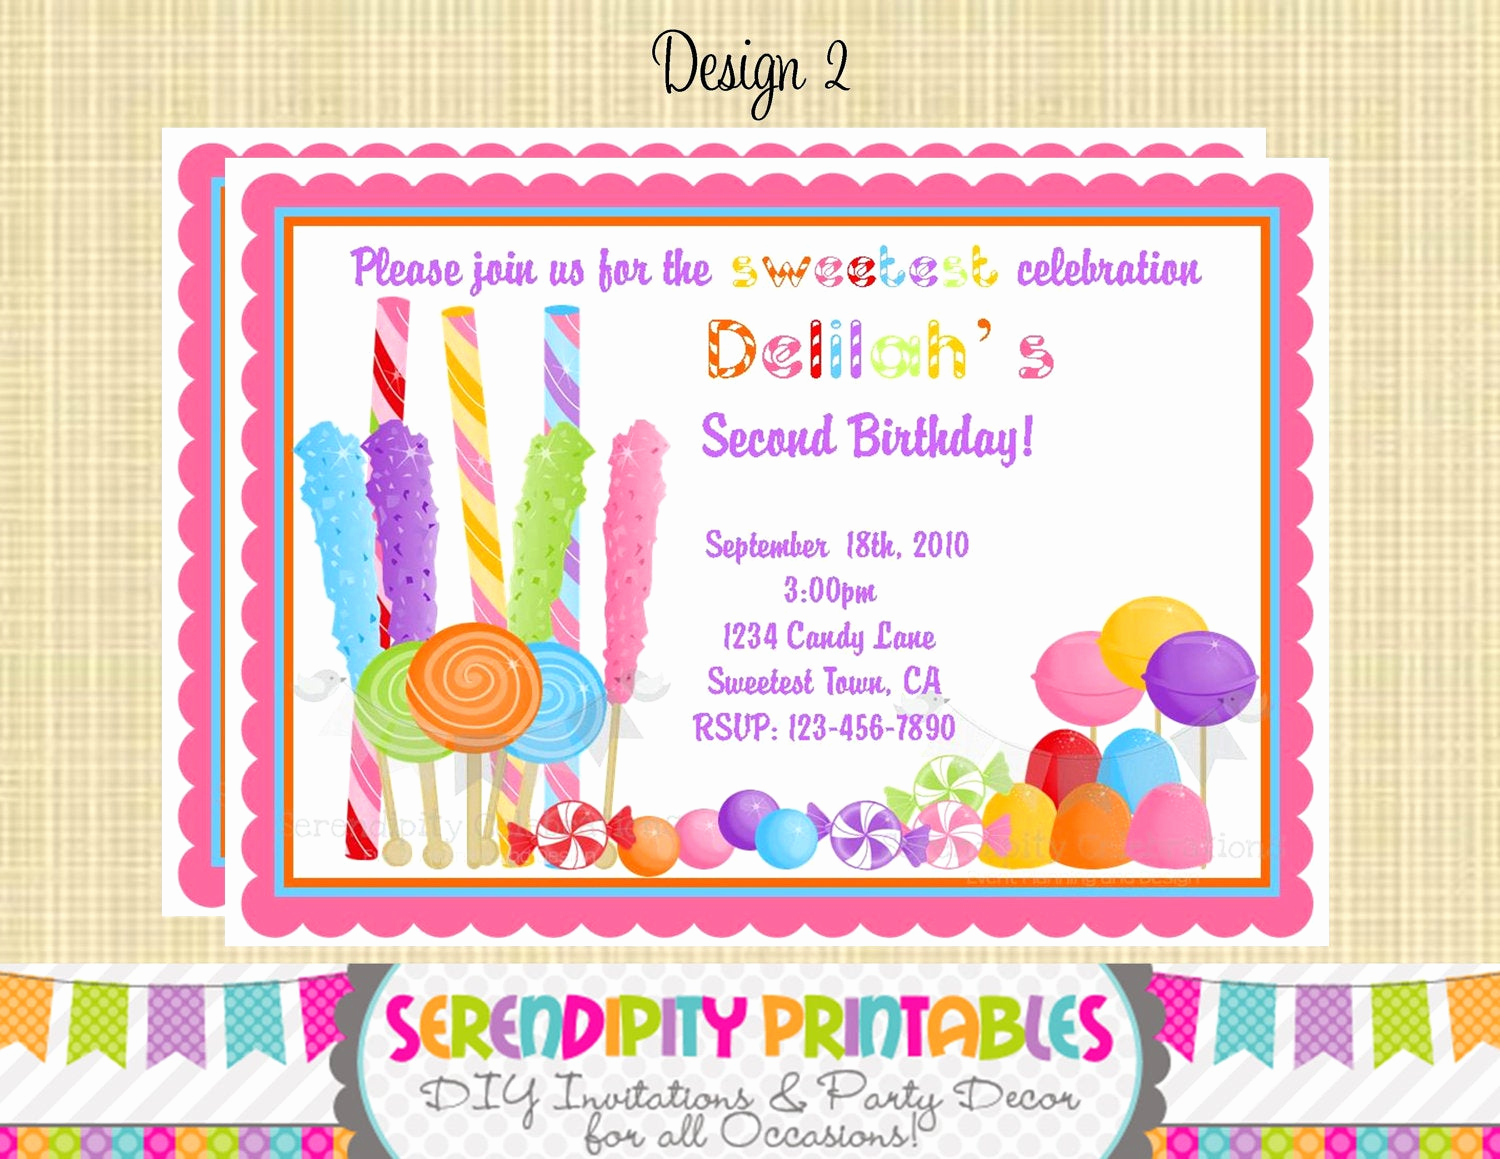 Free Candyland Invitation Template Inspirational Candyland Invitation Use for Birthday Baby Shower Birth